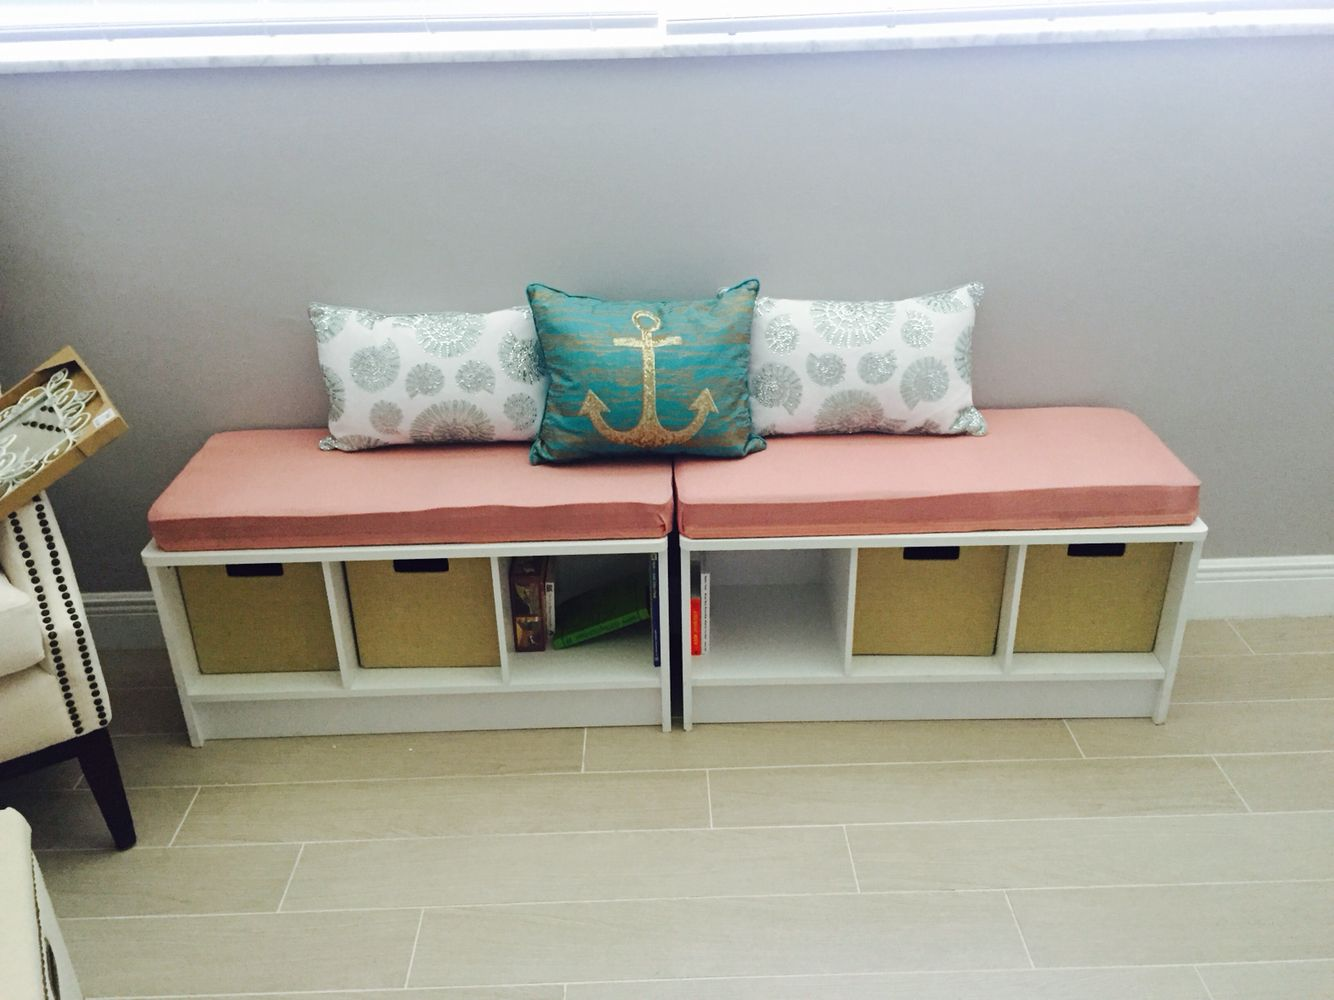 Re Upholstery Closet Maid Storage Bench To Match The Nursery Color Scheme Gray Teal And Coral Pillows From Home Goods Nautical Chic Nursery